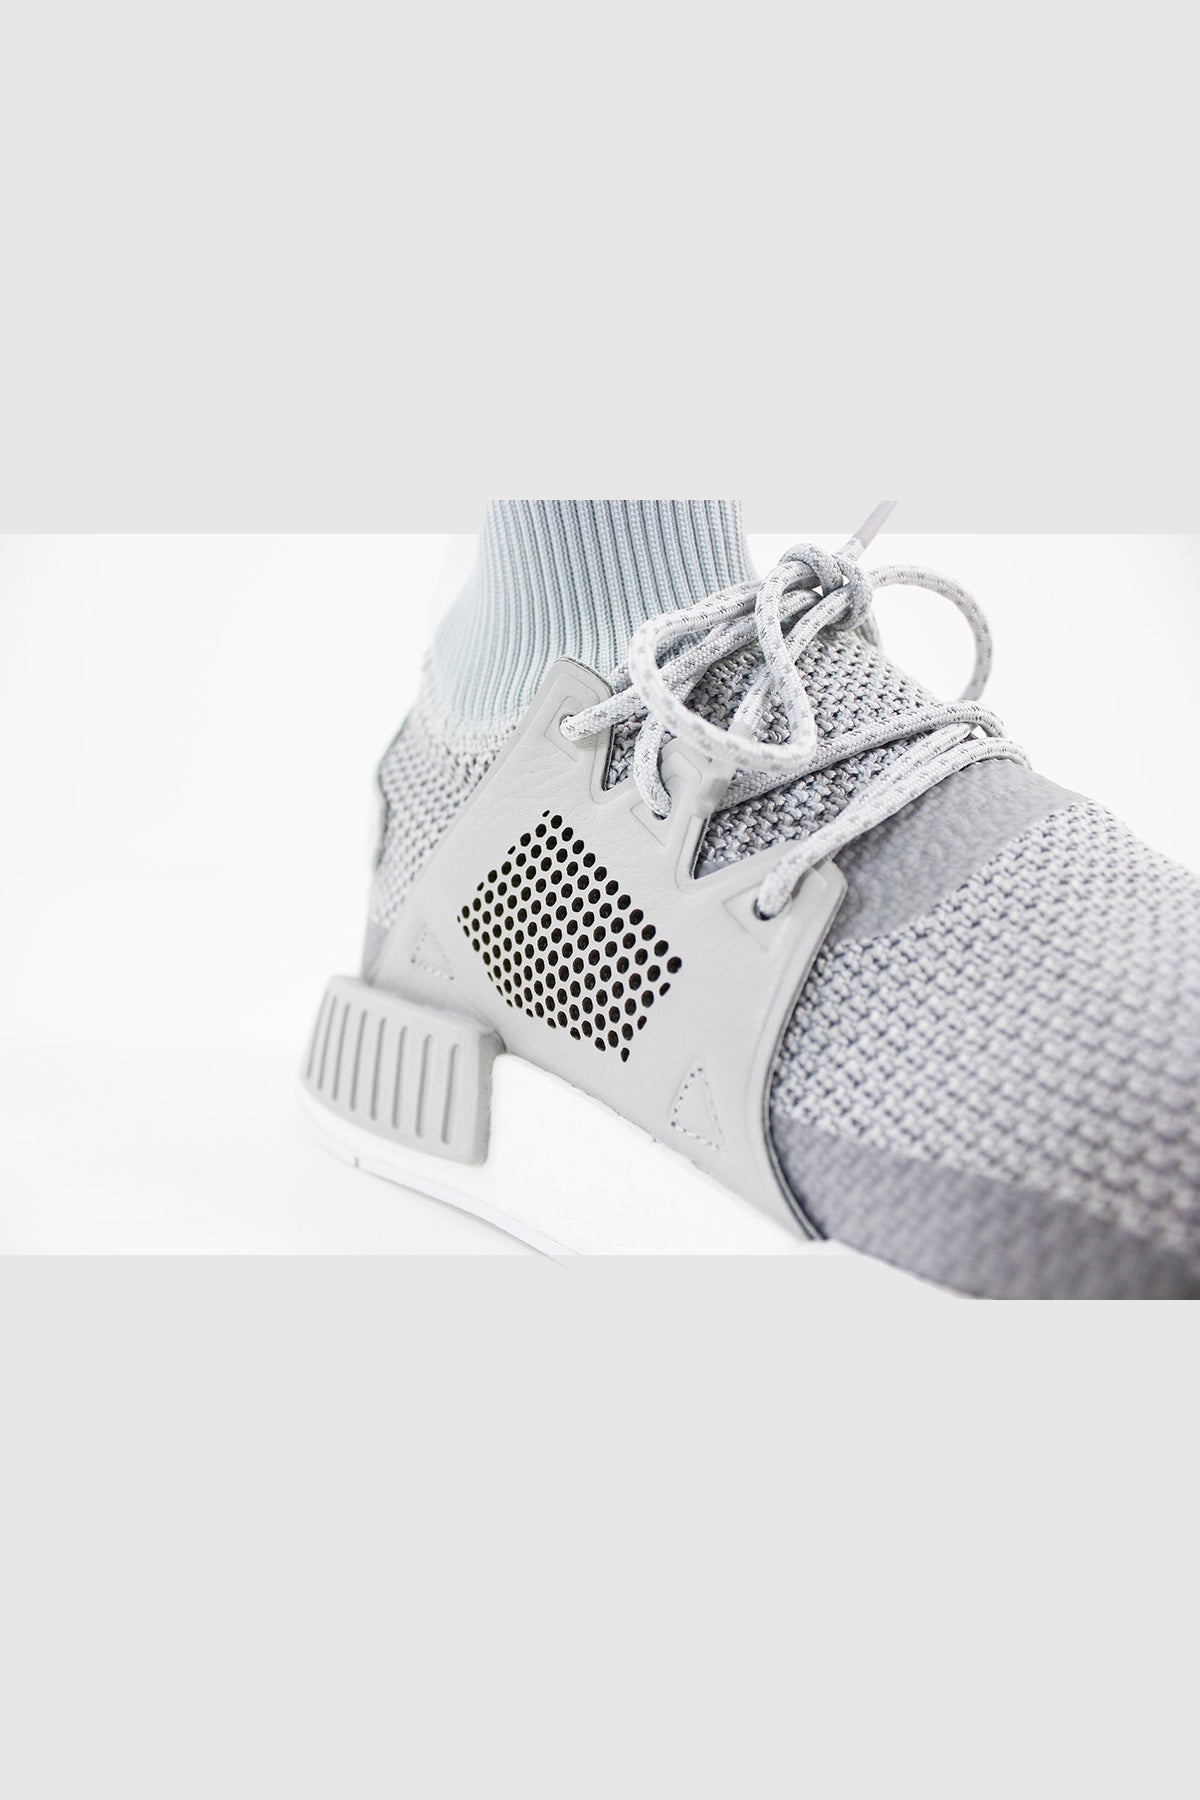 online retailer 0d33a f3a55 Adidas - NMD_XR1 WINTER (GRETWO/GRETWO/GRETWO) BZ0633 ...